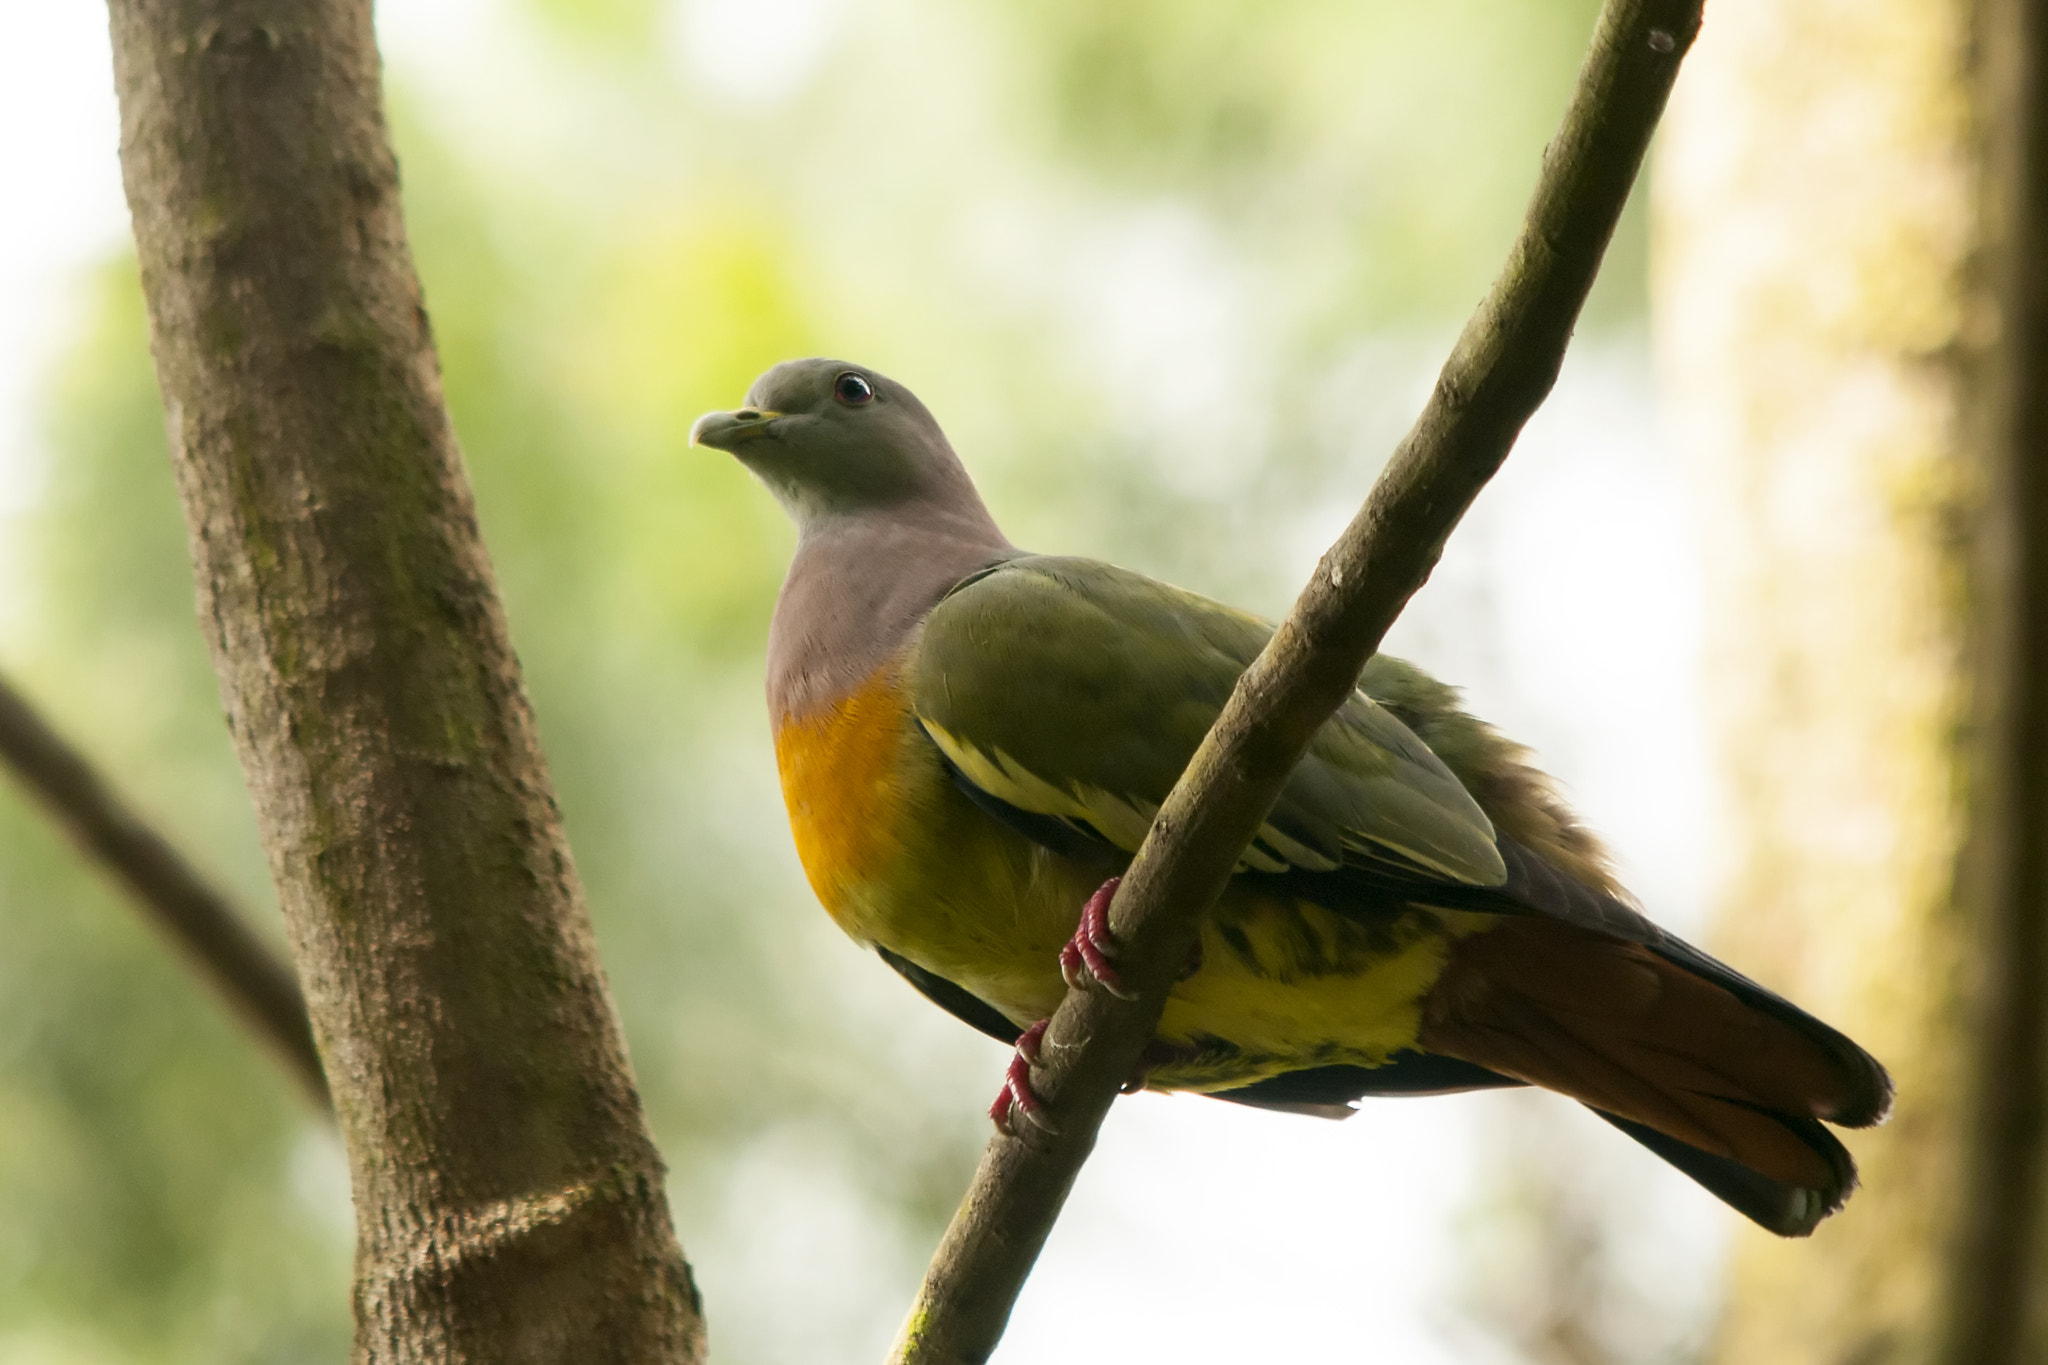 Photograph Pink-necked Pigeon by Allan Seah on 500px